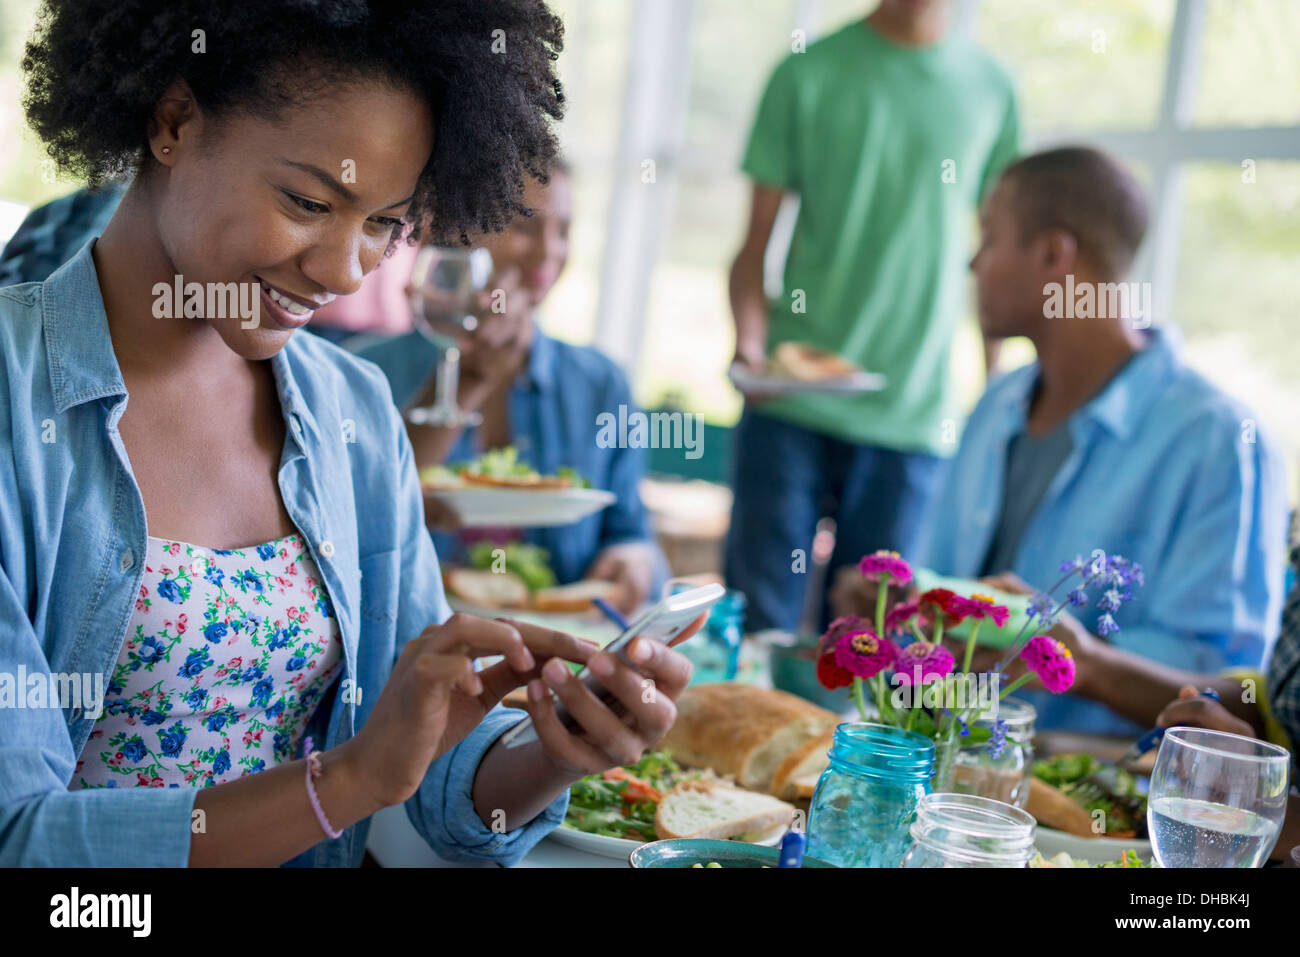 A group of women and men around a table sharing a meal in a farmhouse kitchen. - Stock Image